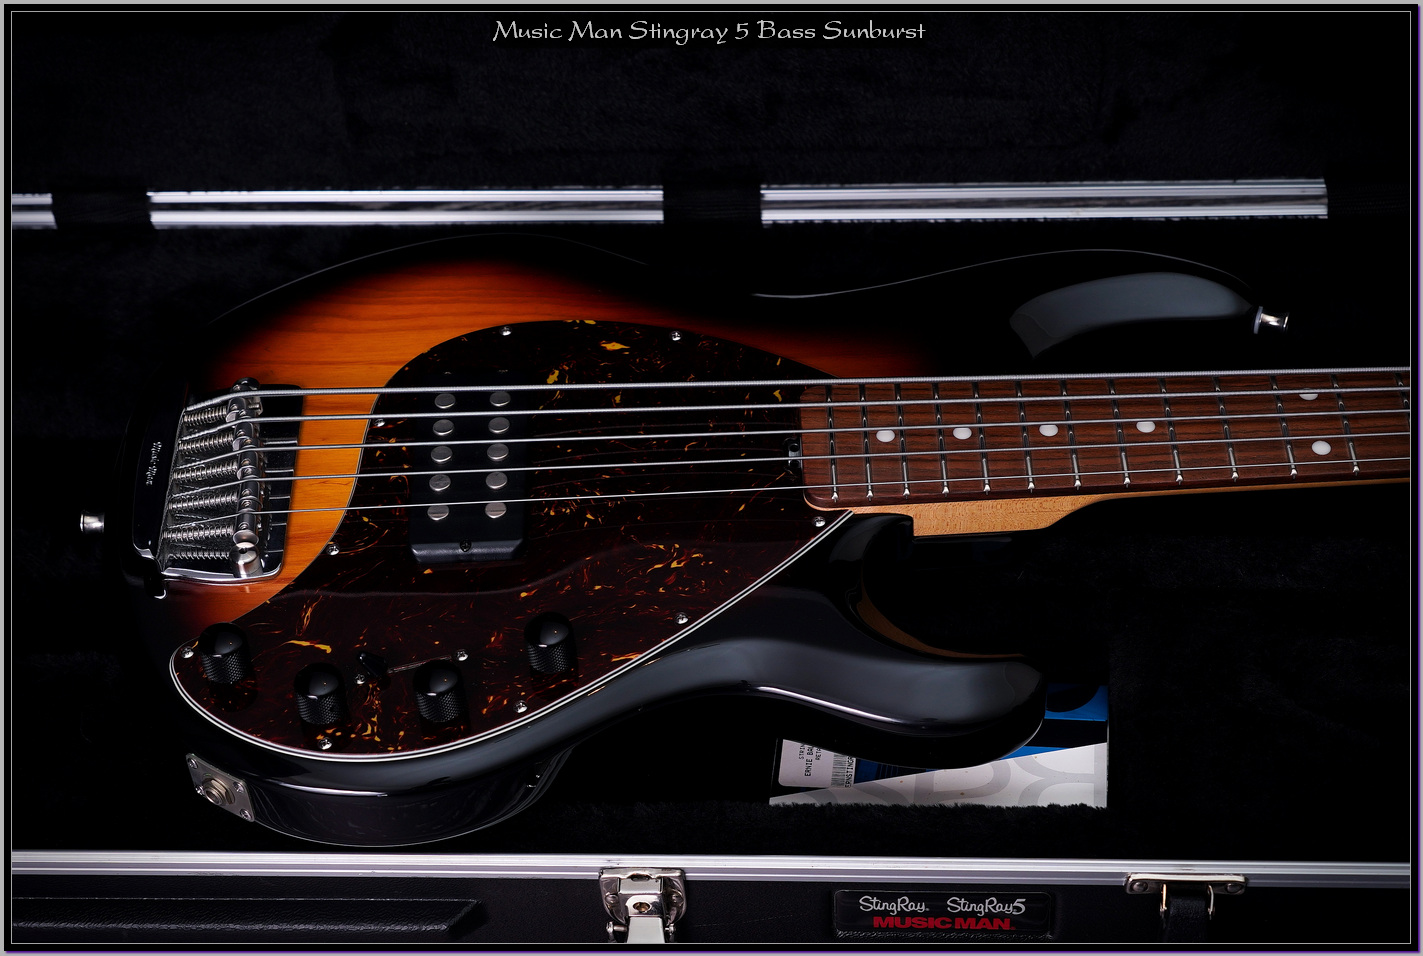 Music Man Stingray 5 Bass Sunburst 04a_xupd.jpg